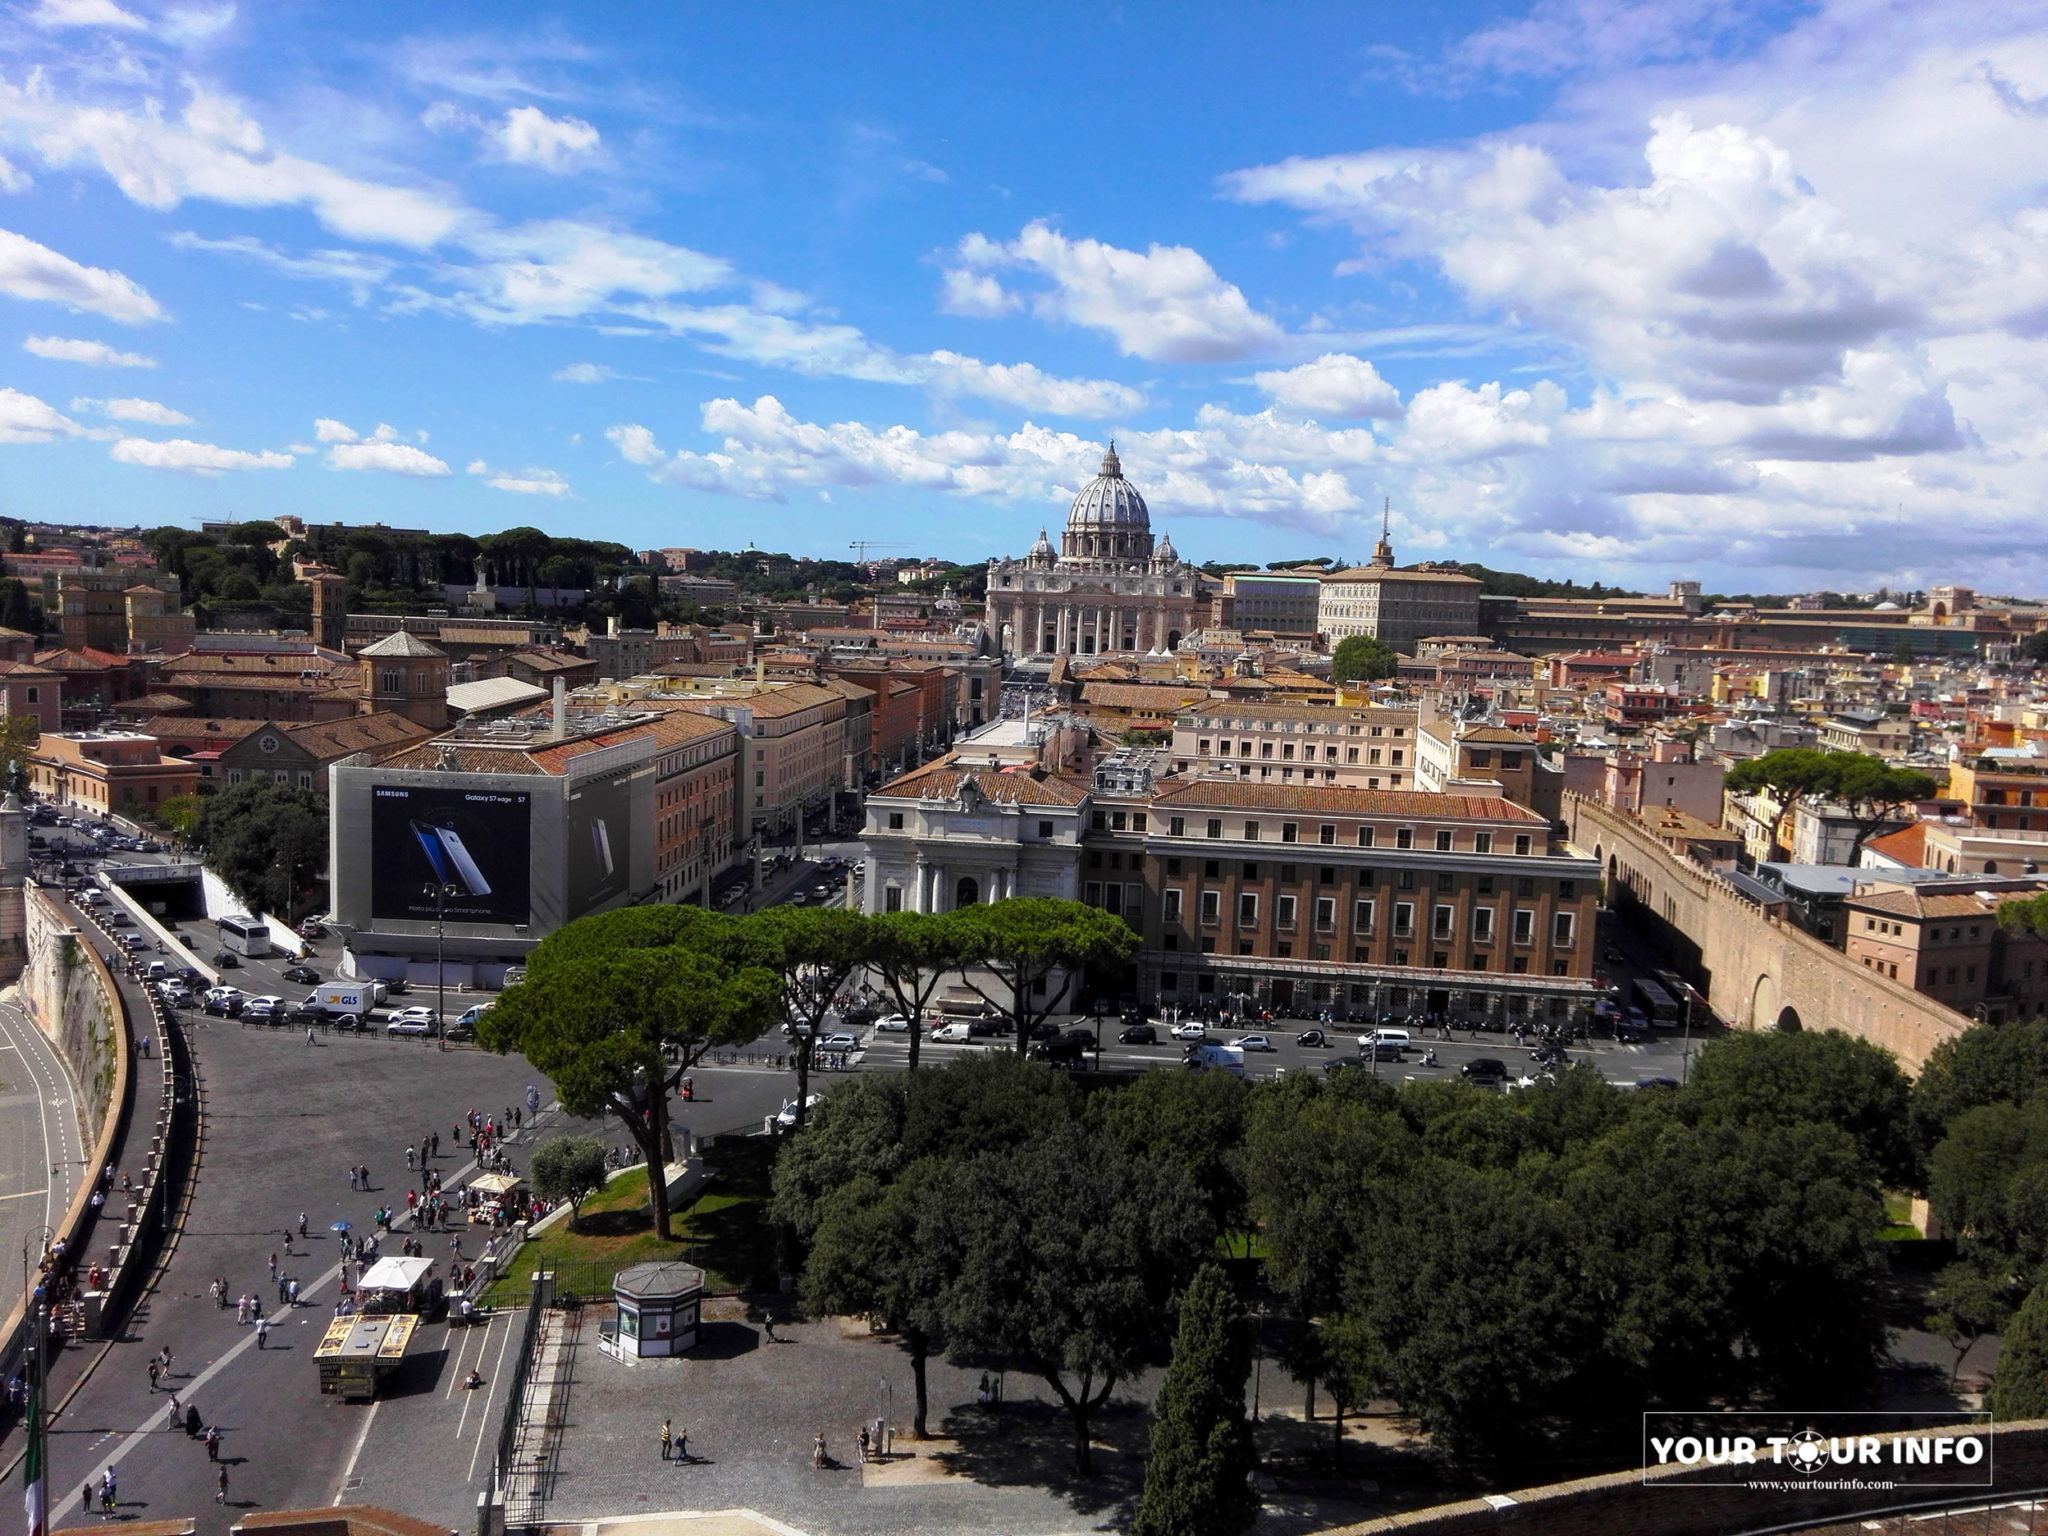 Vatican from The Mausoleum of Hadrian, Rome